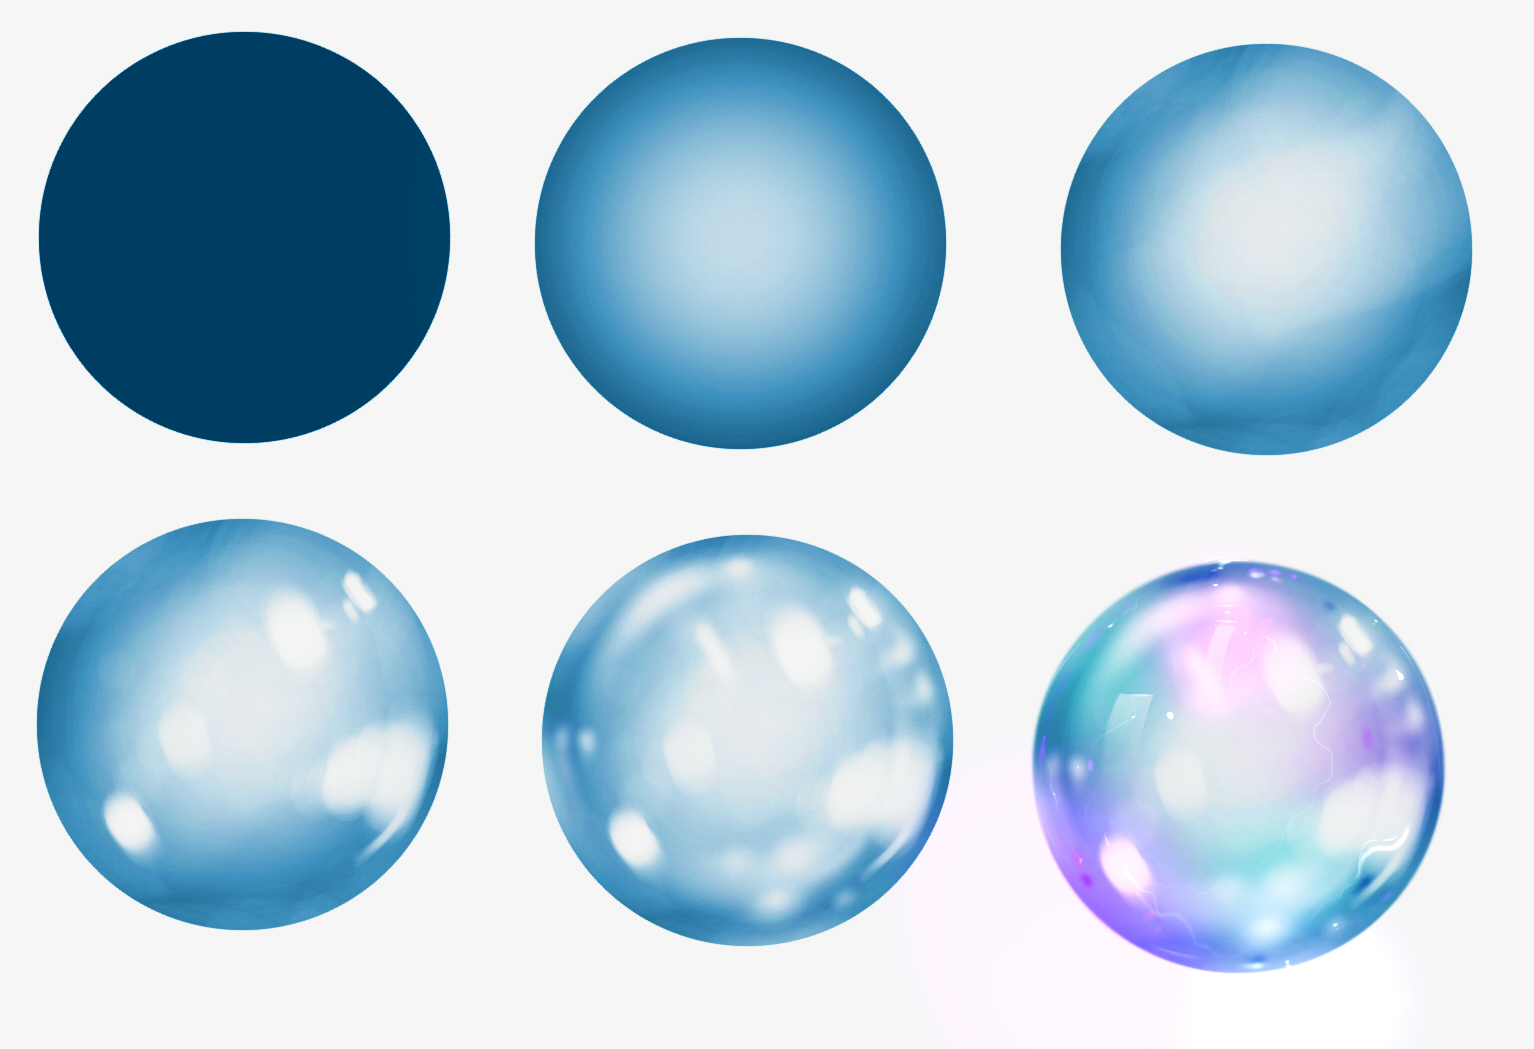 Bubble step by step 2